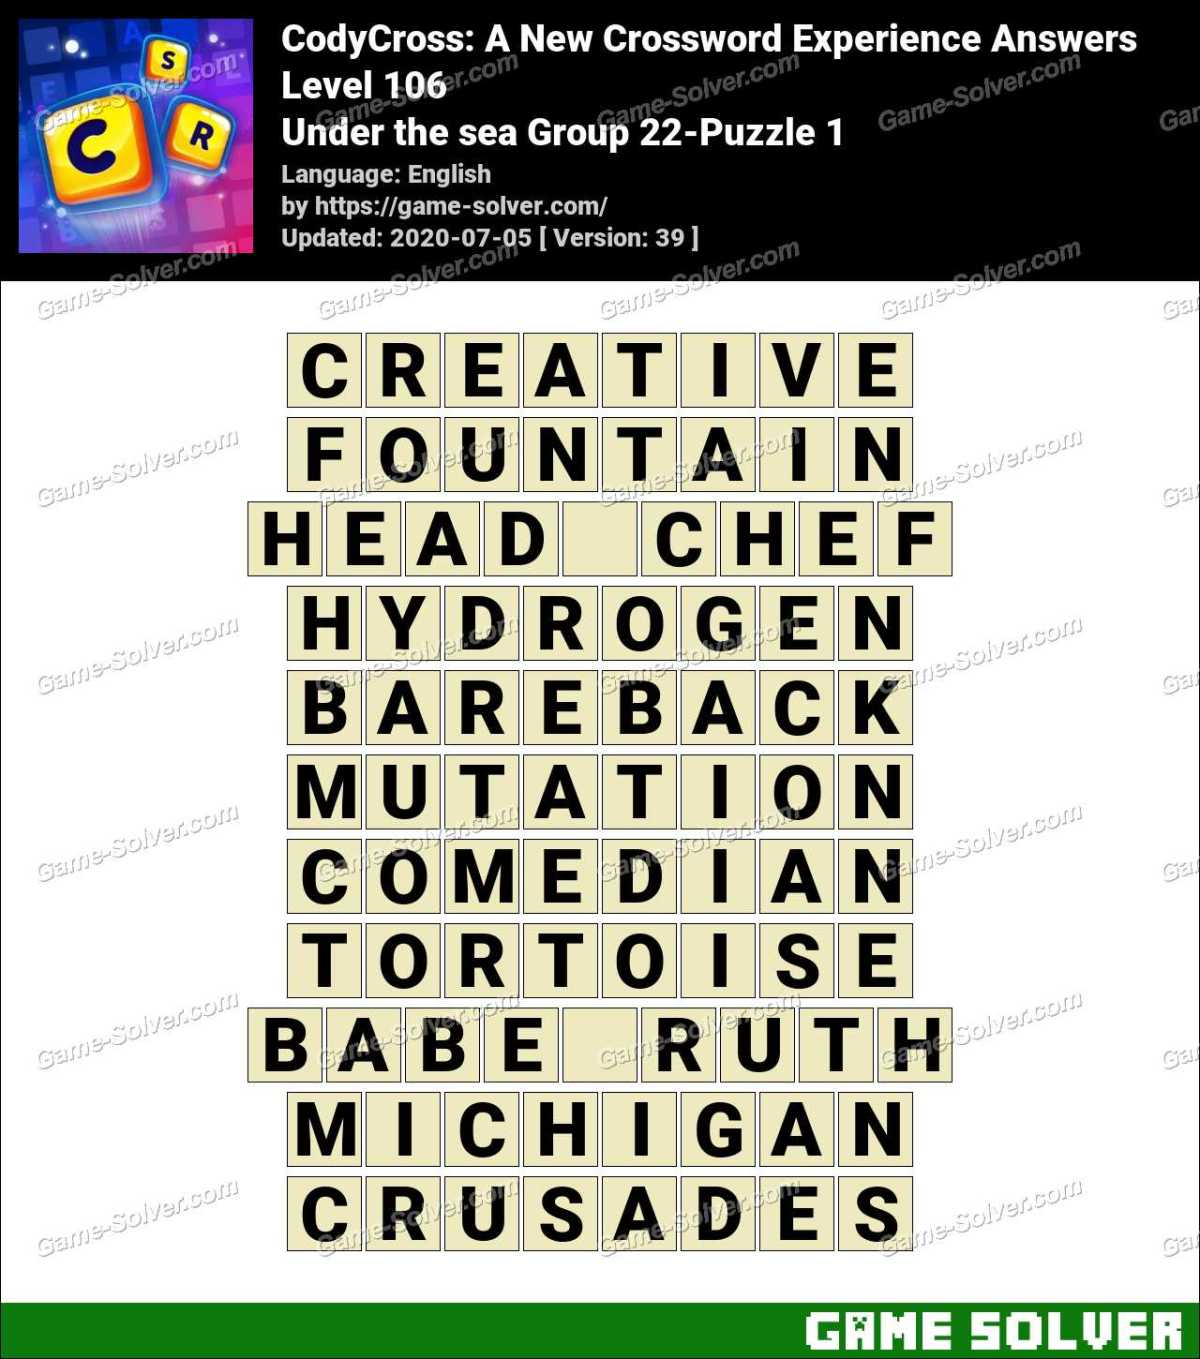 CodyCross Under the sea Group 22-Puzzle 1 Answers